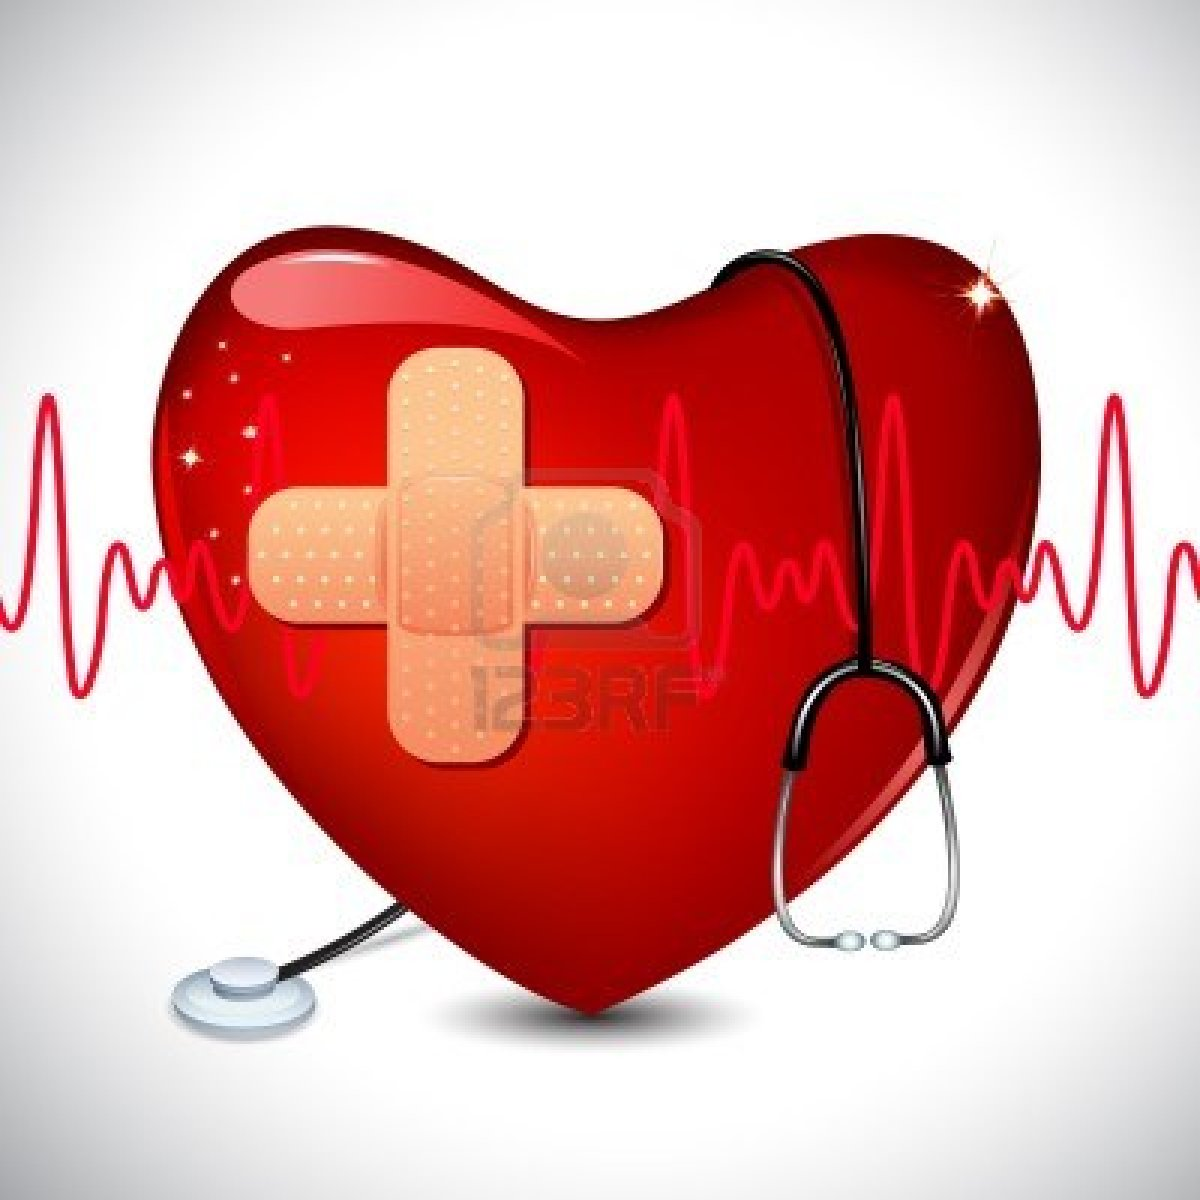 free medical heart clipart - photo #44